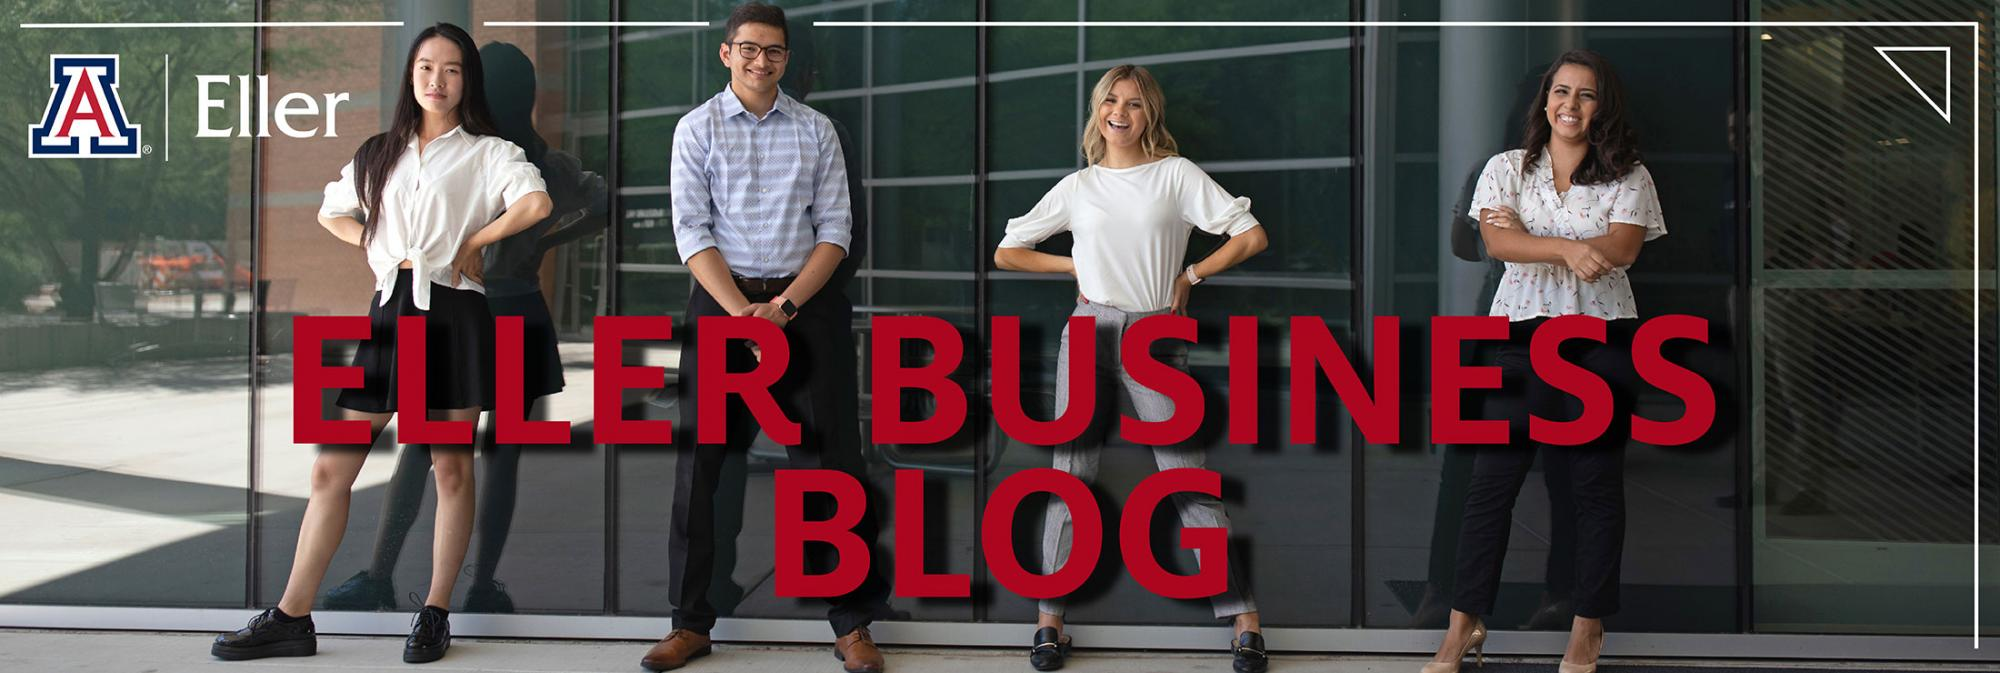 Eller Business Blog